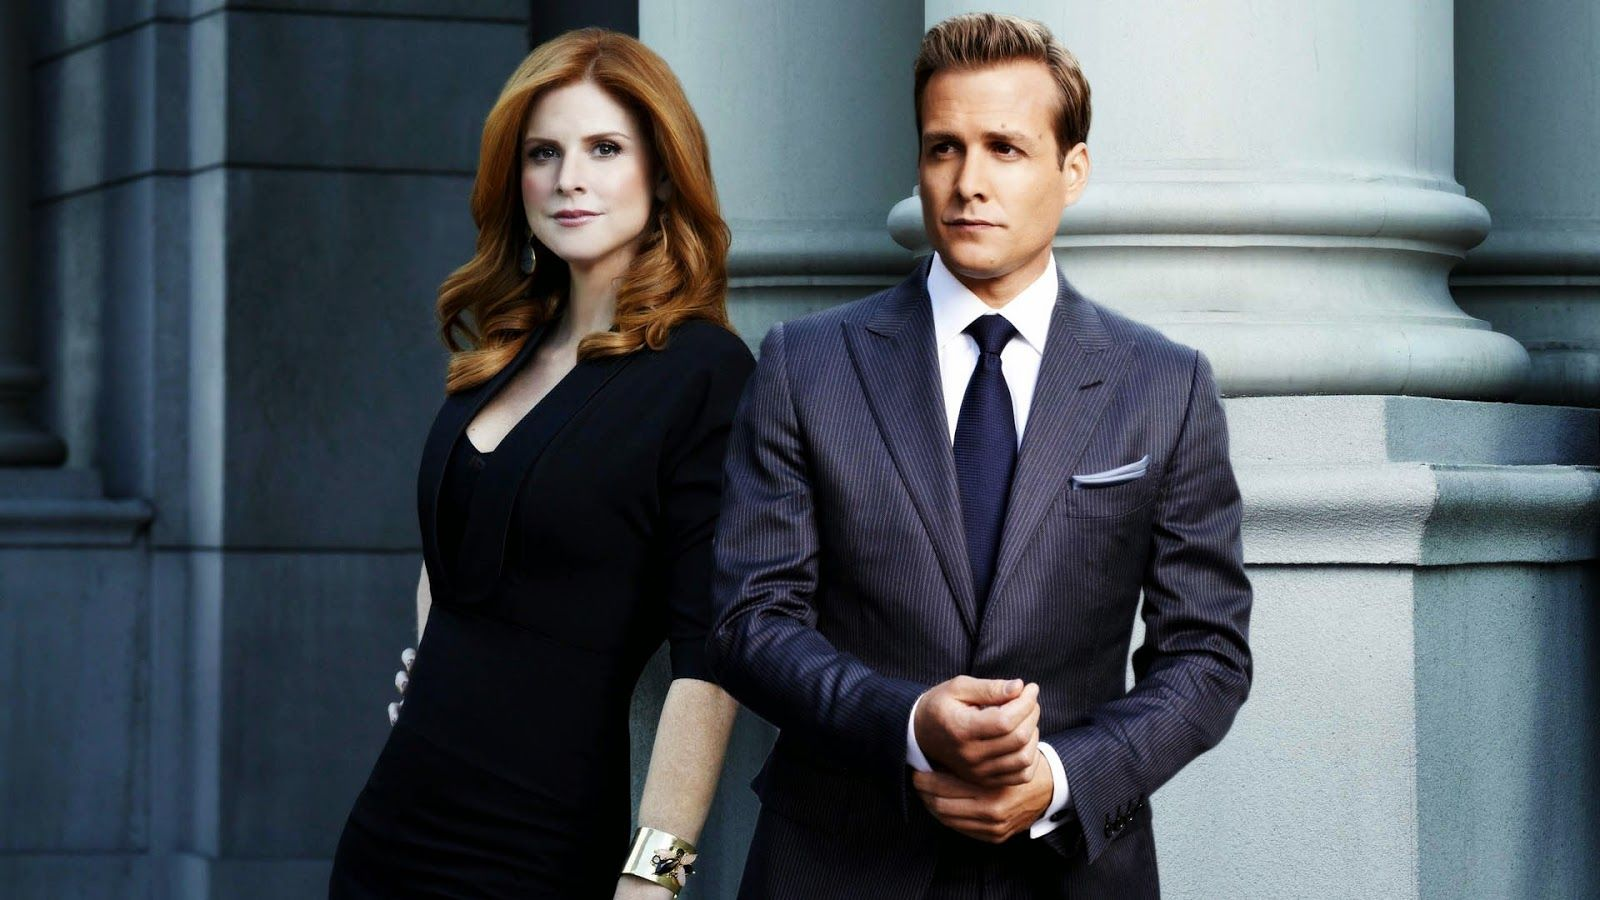 suits wallpapers hd suits tv series wallpapers suits tv series